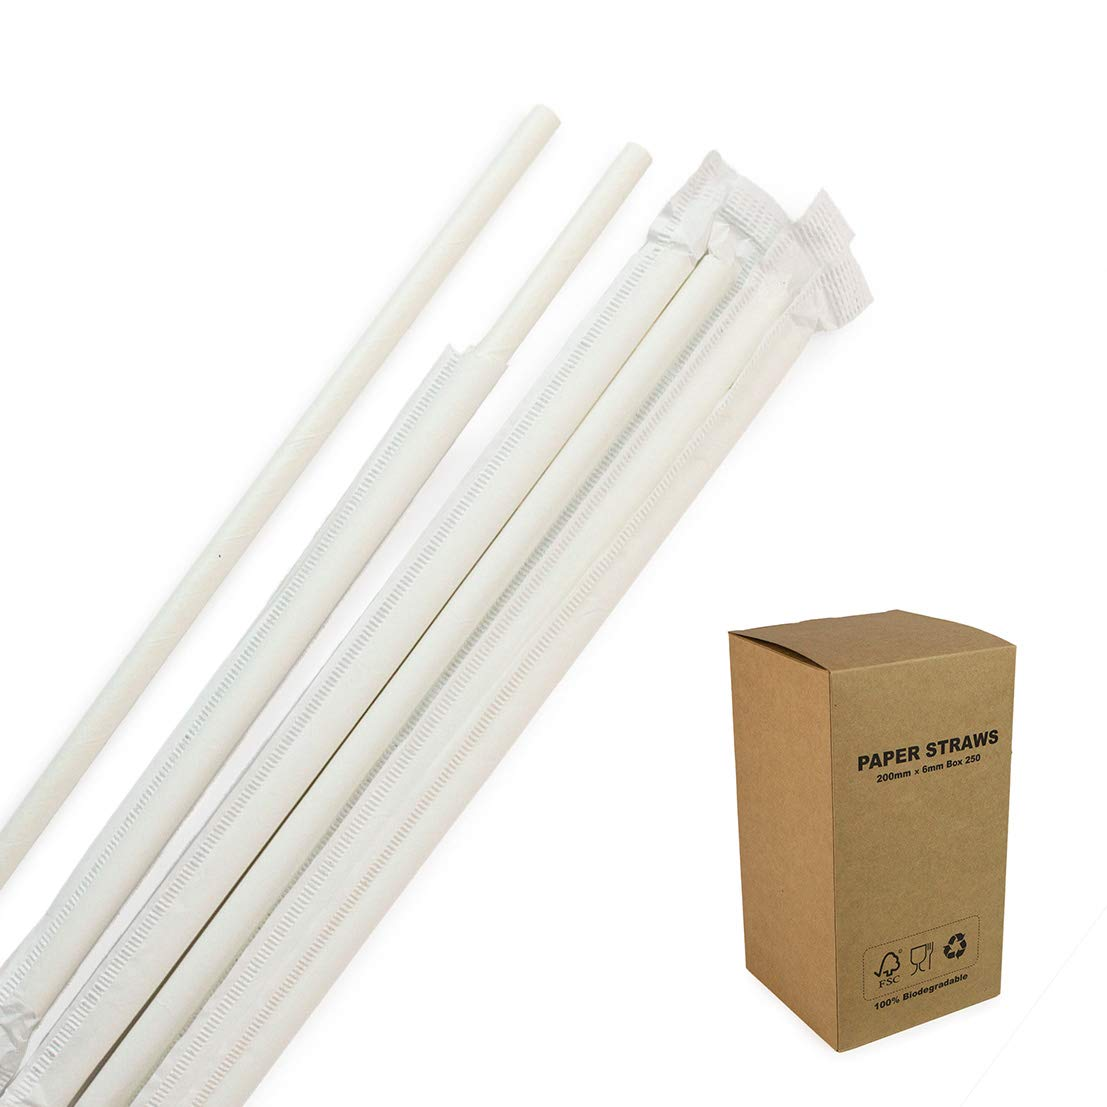 White Paper Straws Wrapped Individually Biodegradable Food-Safe 7 3/4 inches Plain Solid Straws For Bar Restaurant Hotel 250PCS/BOX